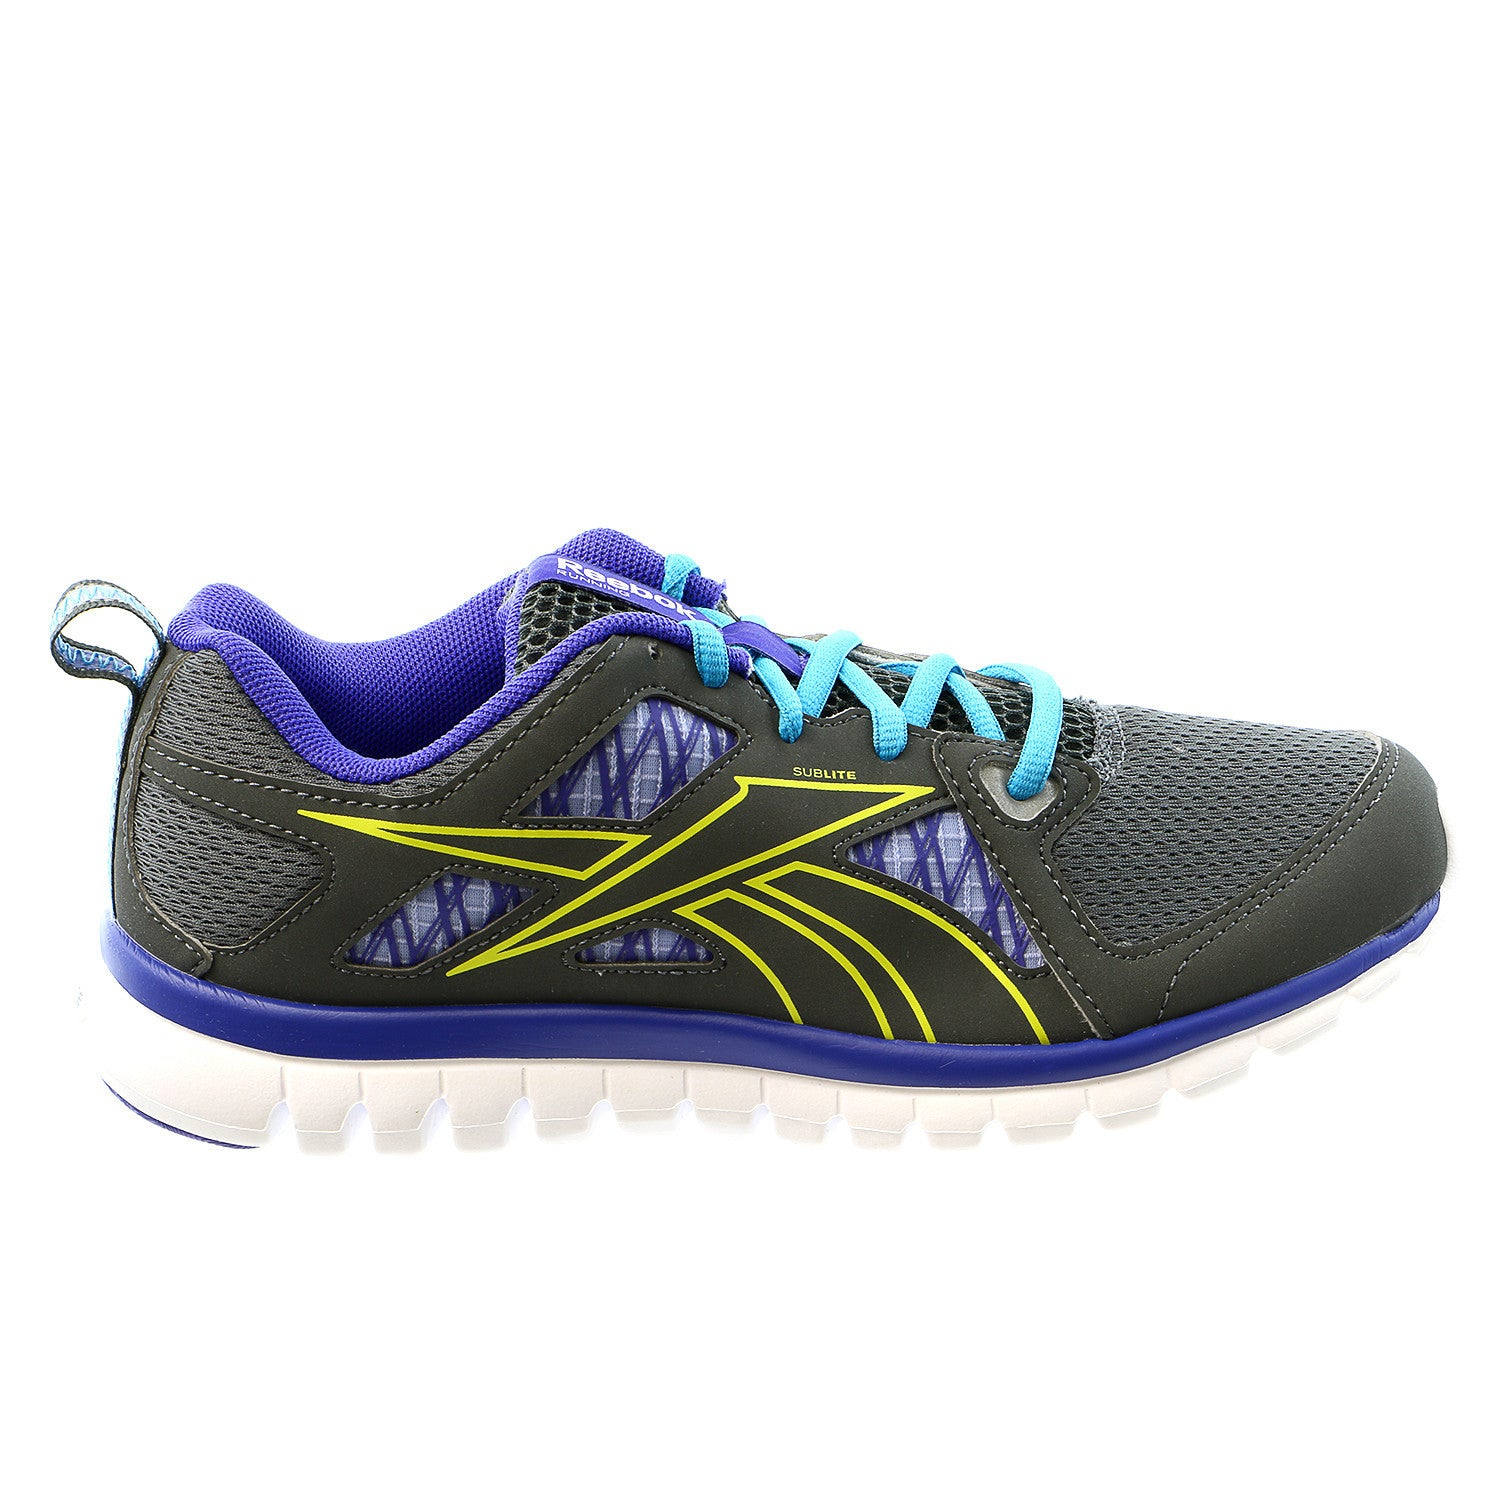 ae620a44 Reebok Sublite Escape MT Running Shoe - Grey/Purple/Green/Blue - Womens